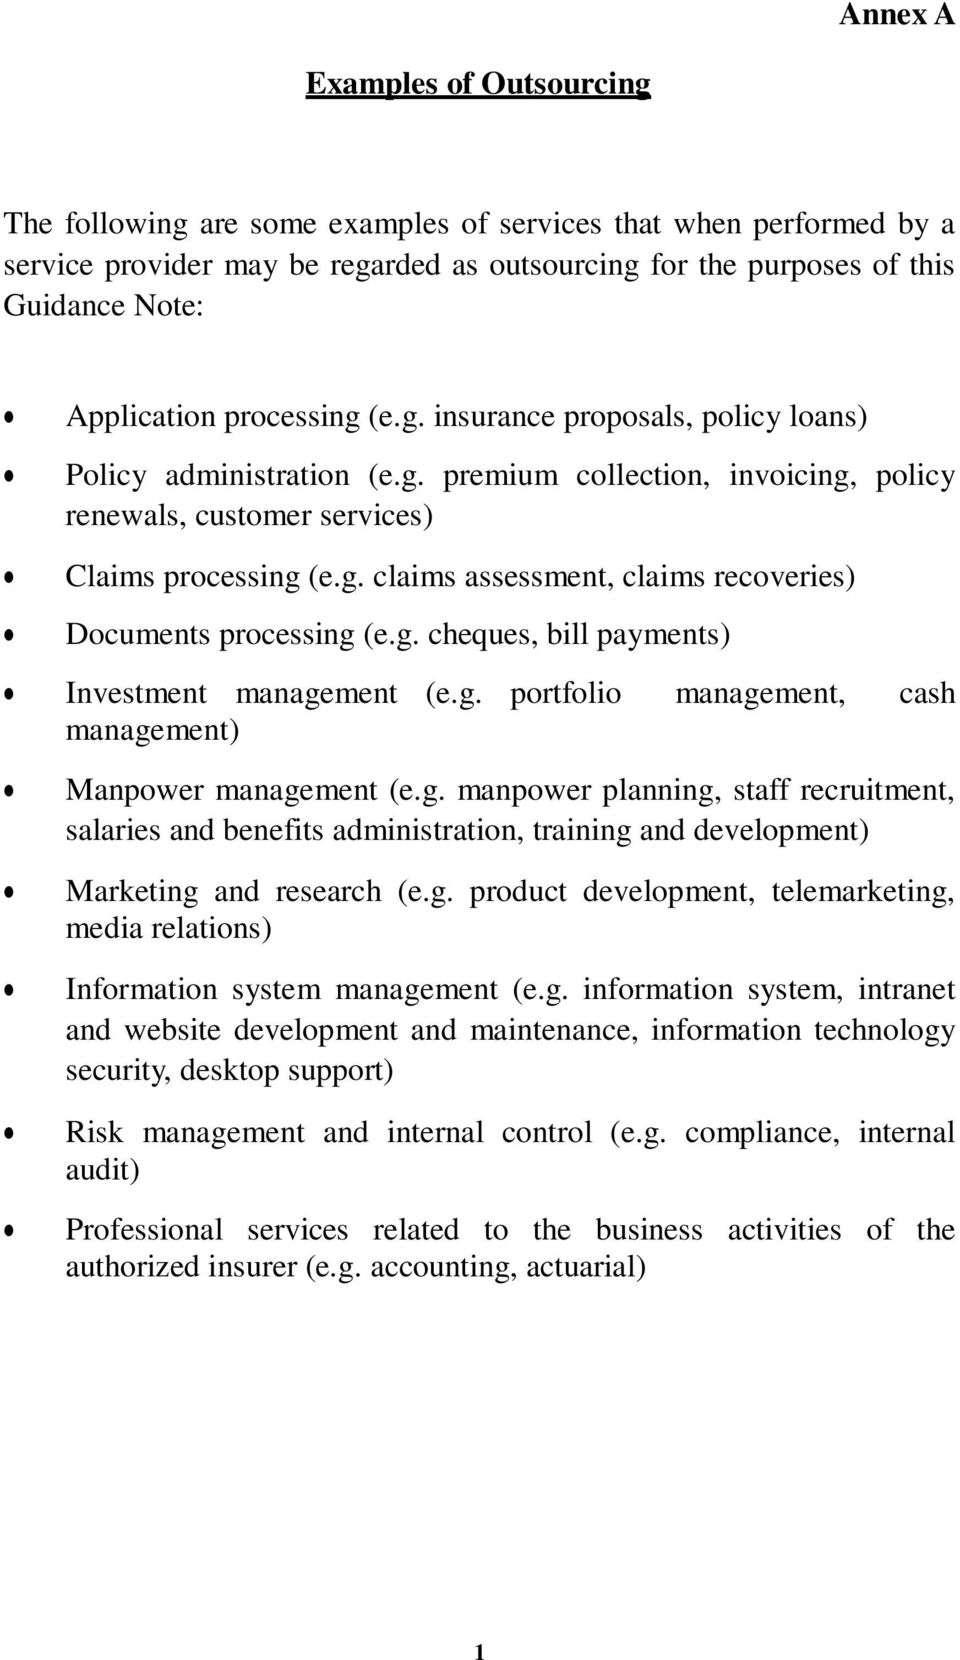 g. cheques, bill payments) Investment management (e.g. portfolio management, cash management) Manpower management (e.g. manpower planning, staff recruitment, salaries and benefits administration, training and development) Marketing and research (e.